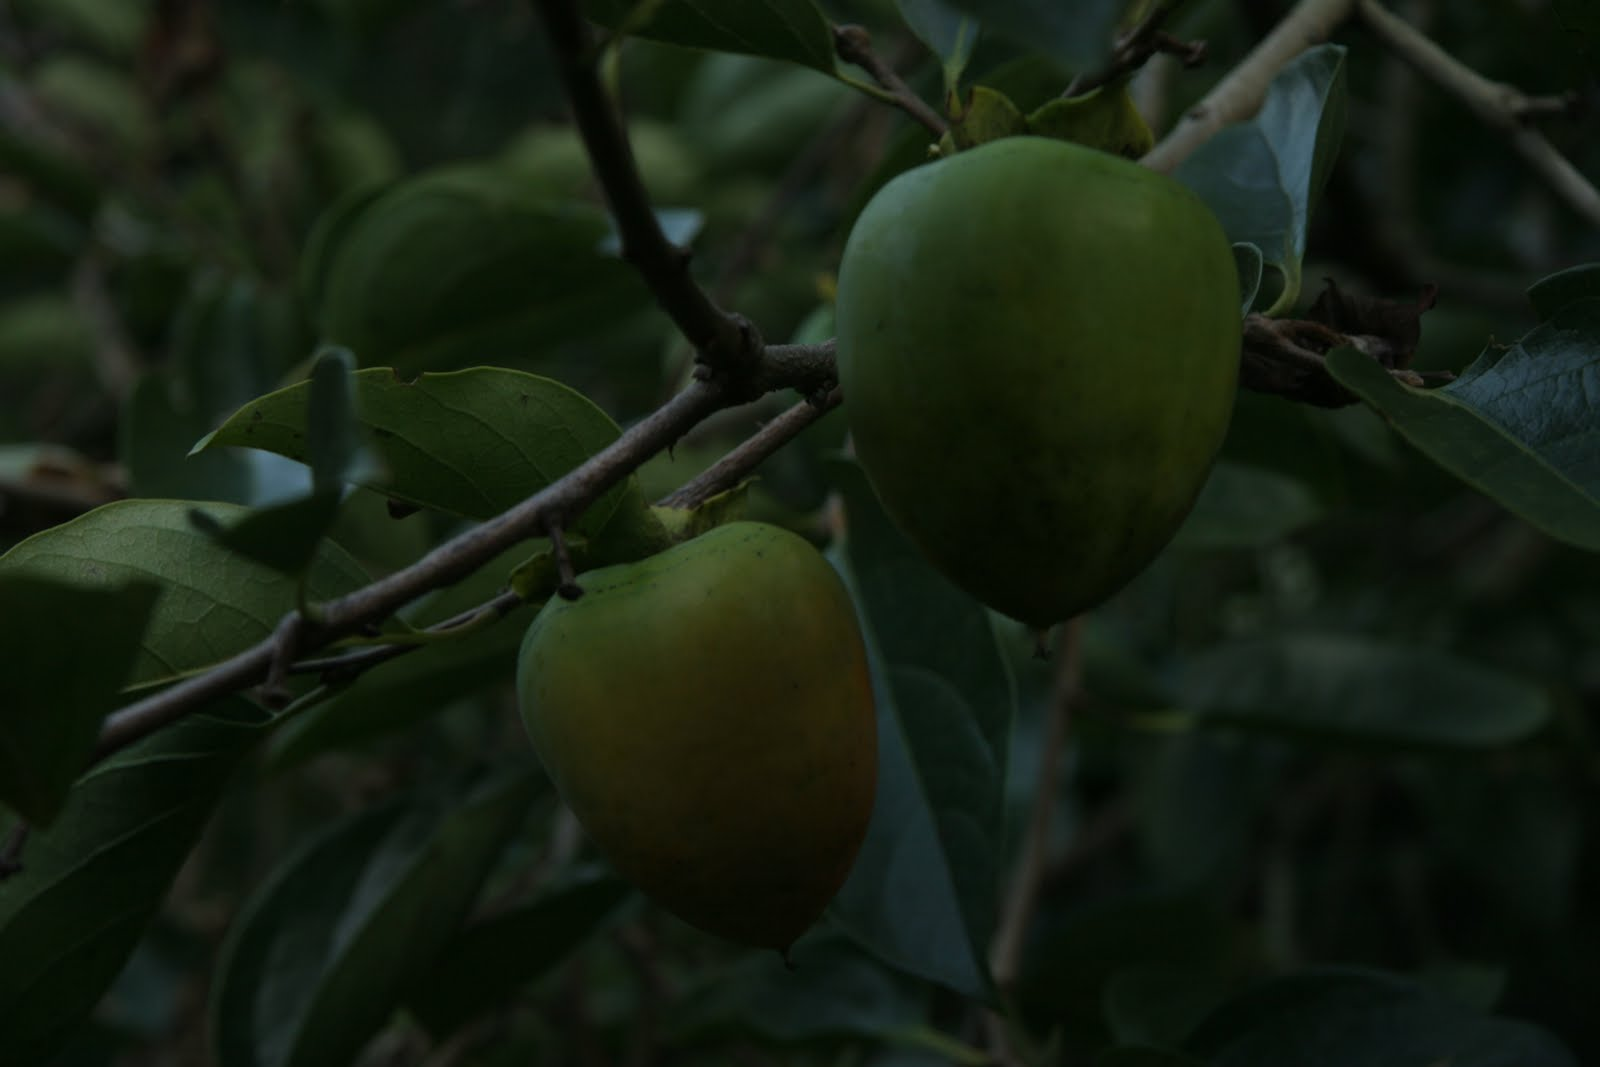 how to make persimmon extract